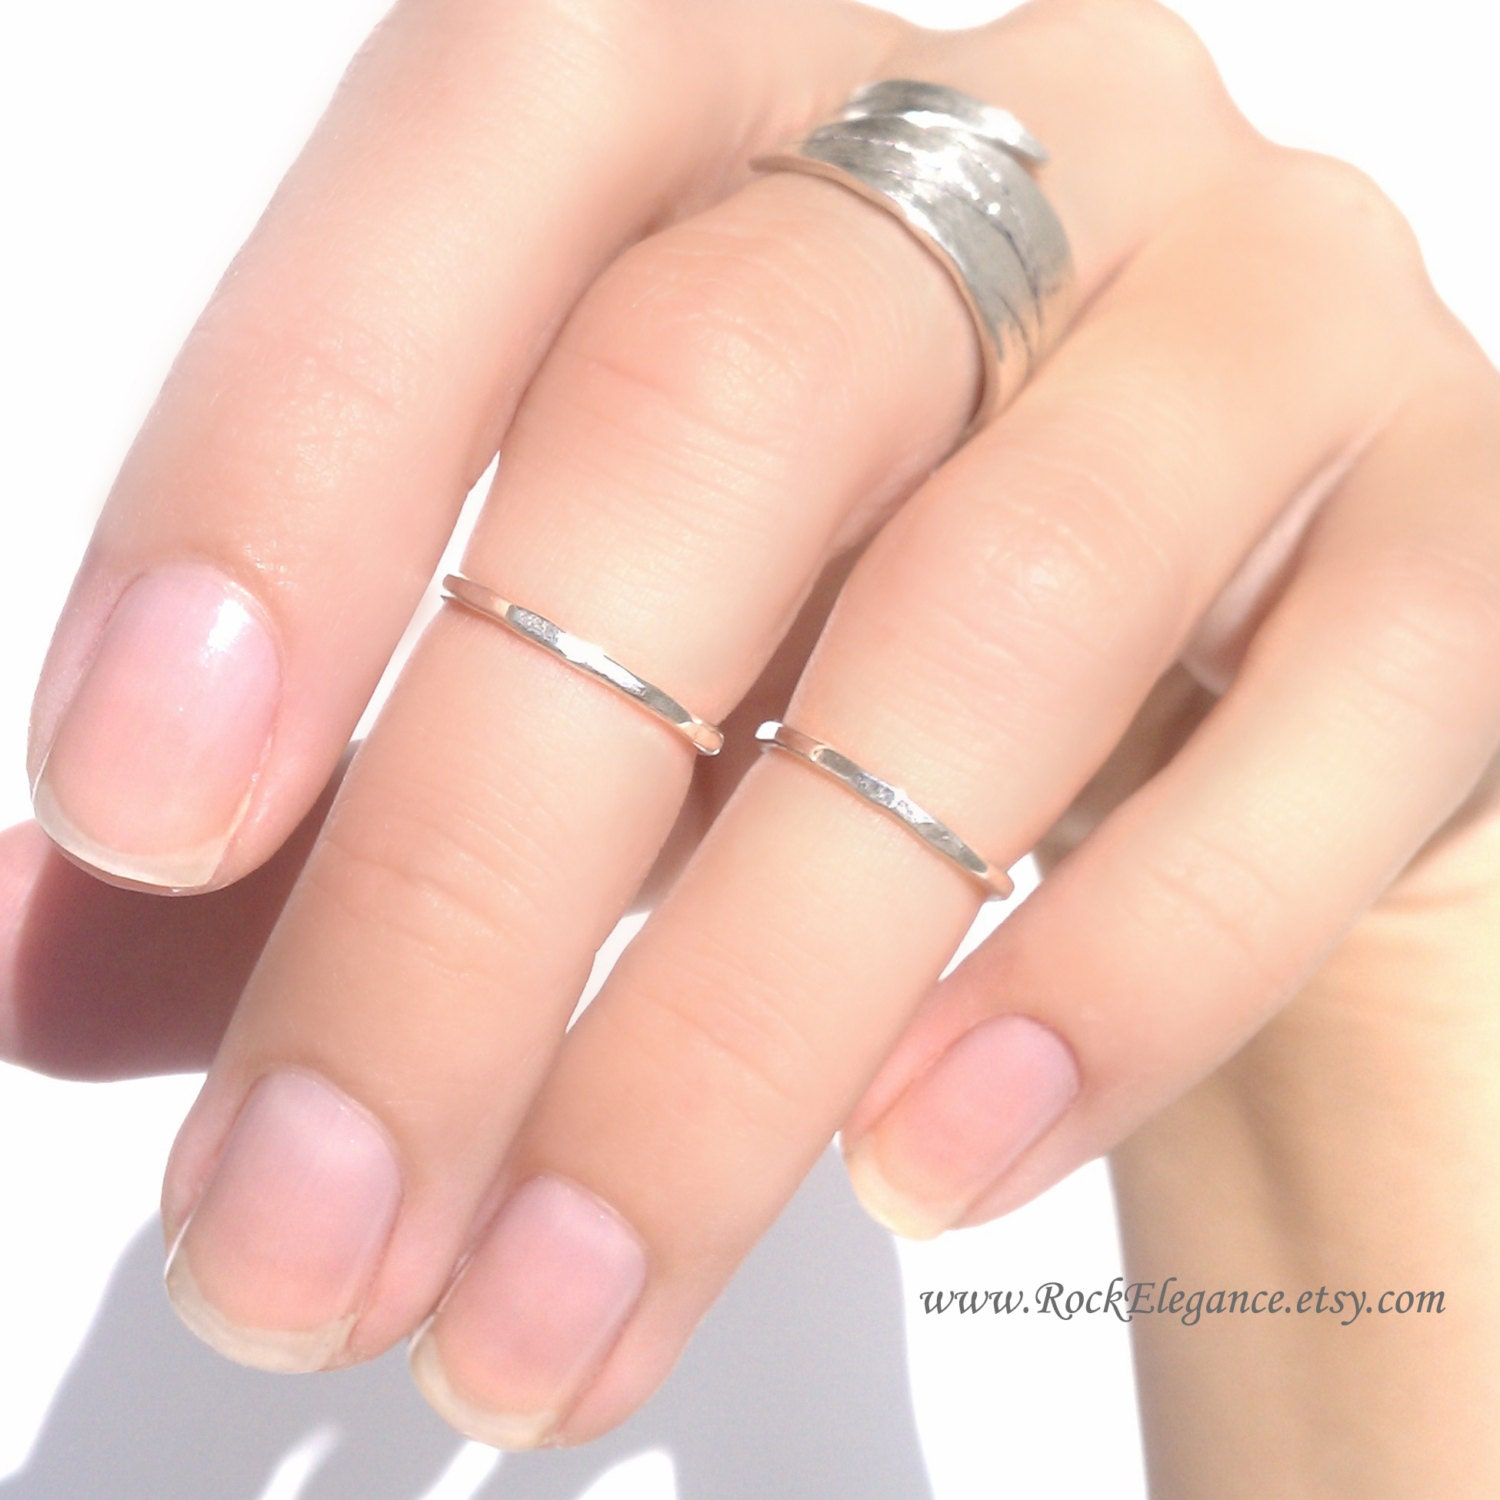 without rings whole stackable are source my for of these hard andreea simply complete subtle favorite go pieces to statement unnamed ring little but look capable making small your